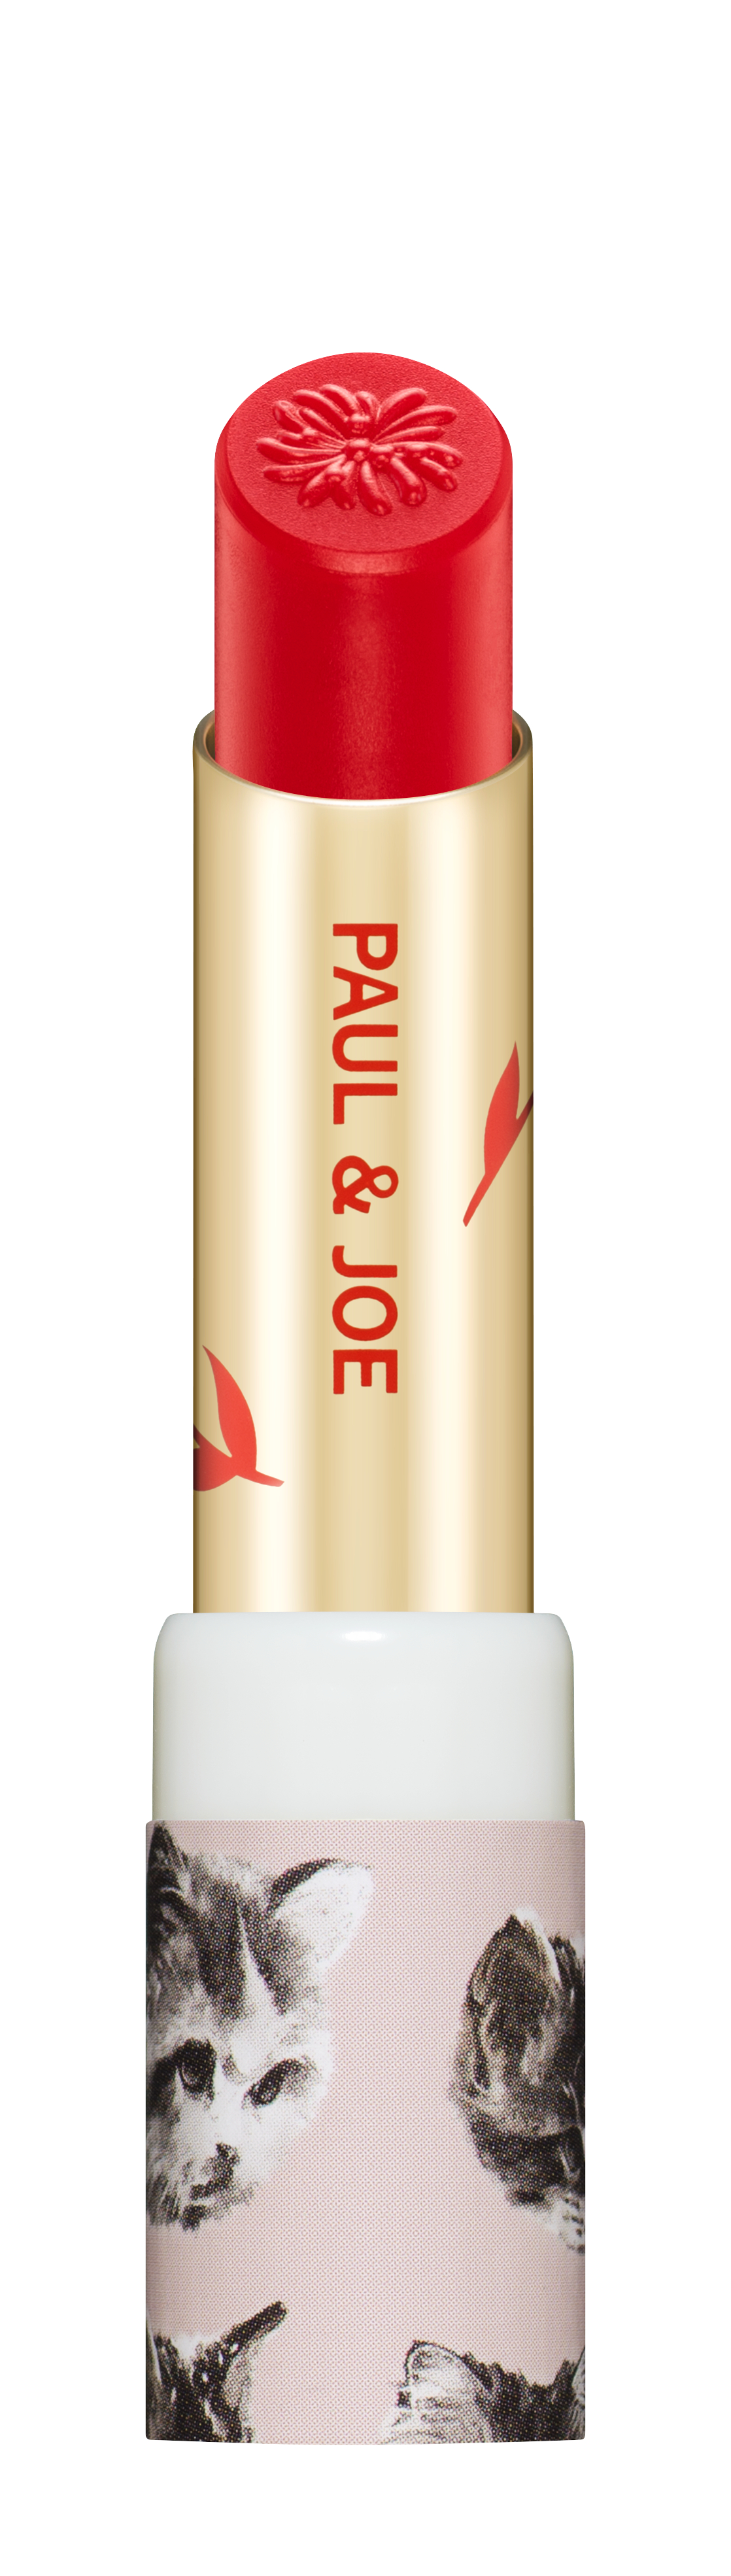 Lipstick from the Paul & Joe Beauté